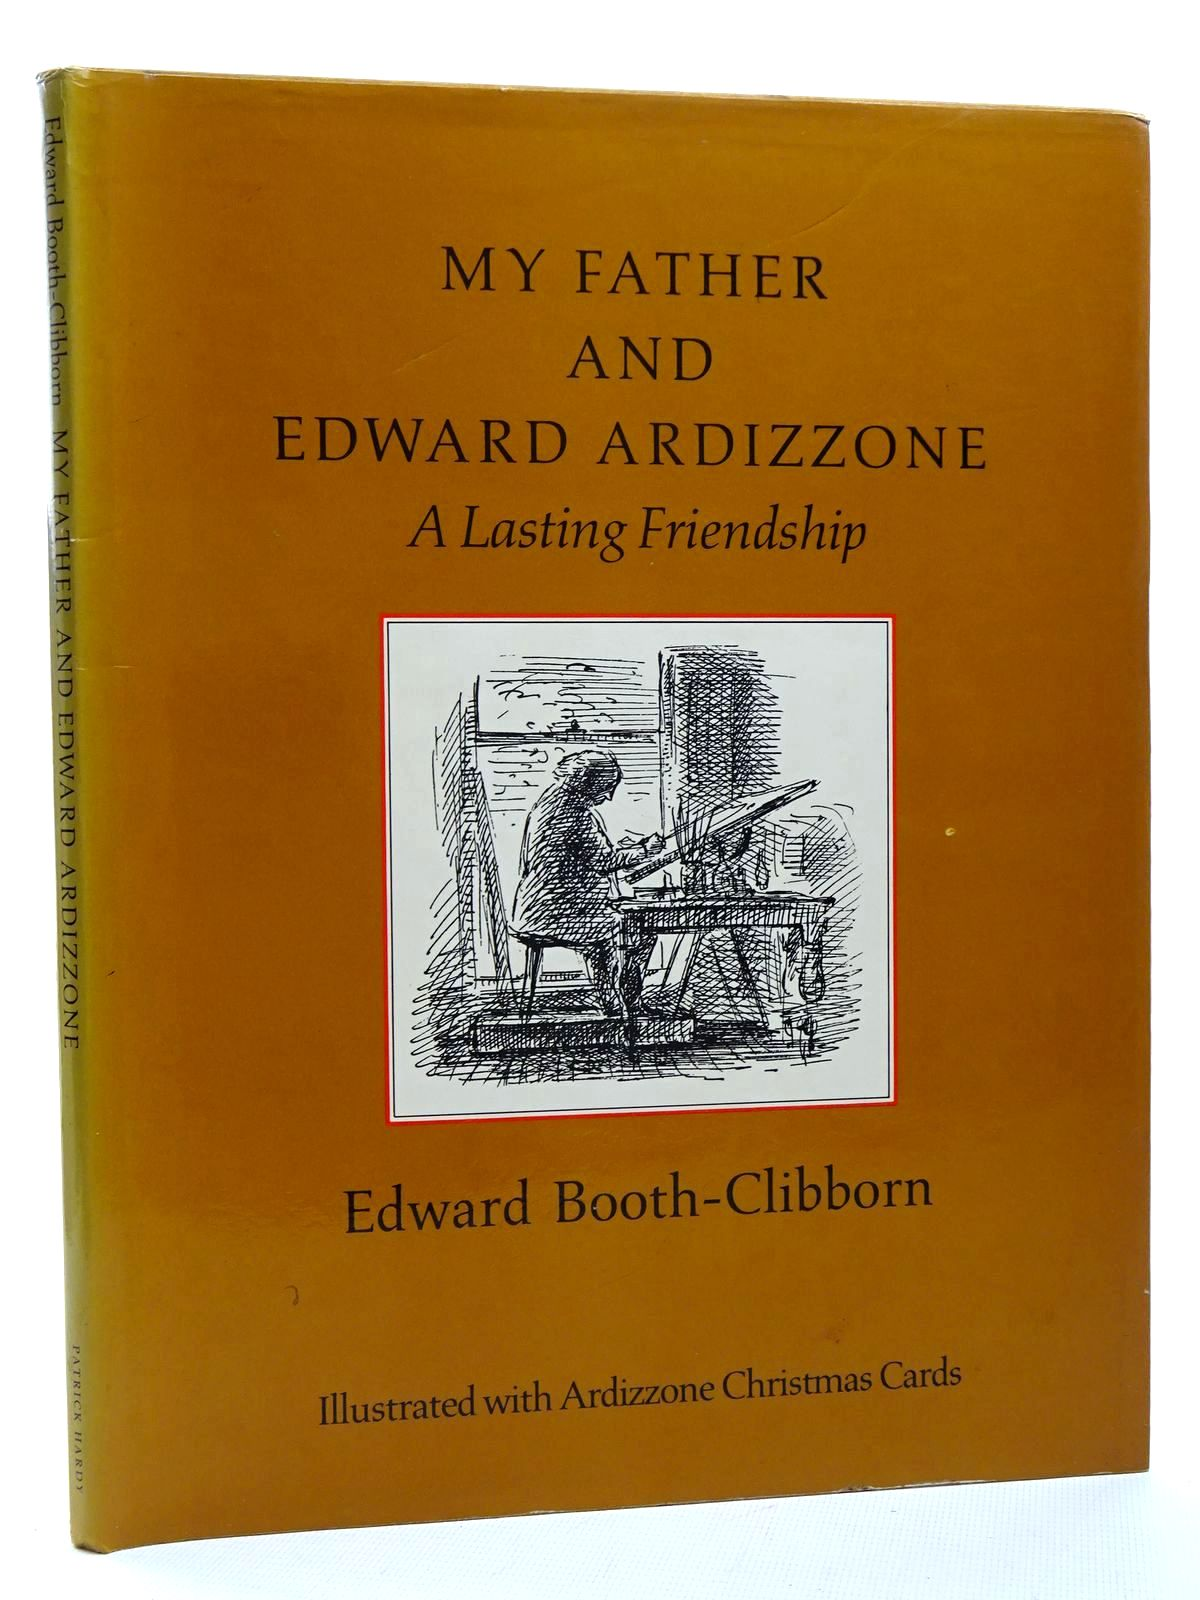 Photo of MY FATHER AND EDWARD ARDIZZONE written by Booth-Clibborn, Edward illustrated by Ardizzone, Edward published by Patrick Hardy Books (STOCK CODE: 1815933)  for sale by Stella & Rose's Books